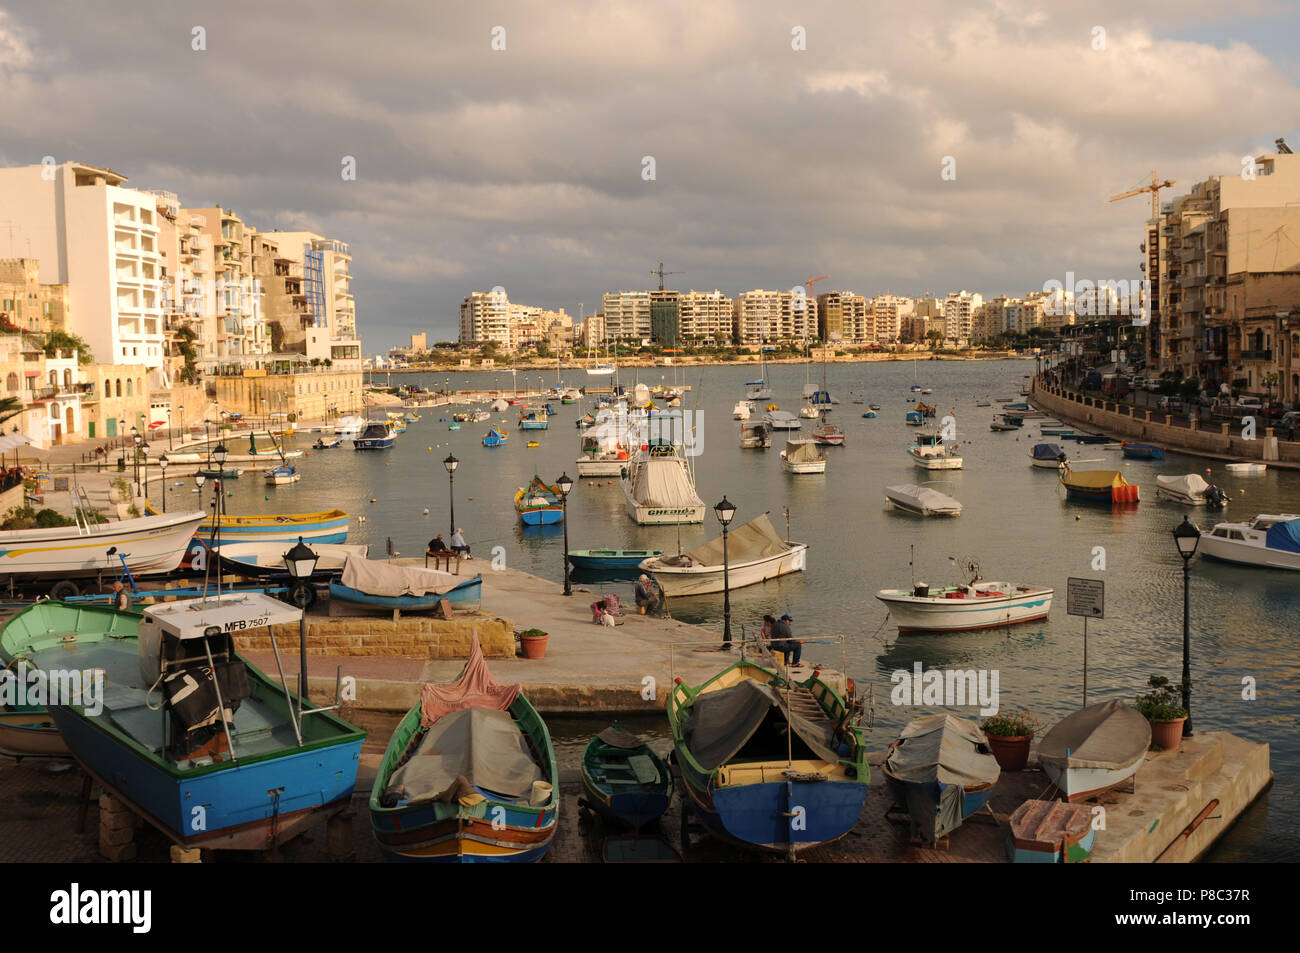 Malta Island: St. Juliens harbour full of sailing boats and luxury yachts - Stock Image